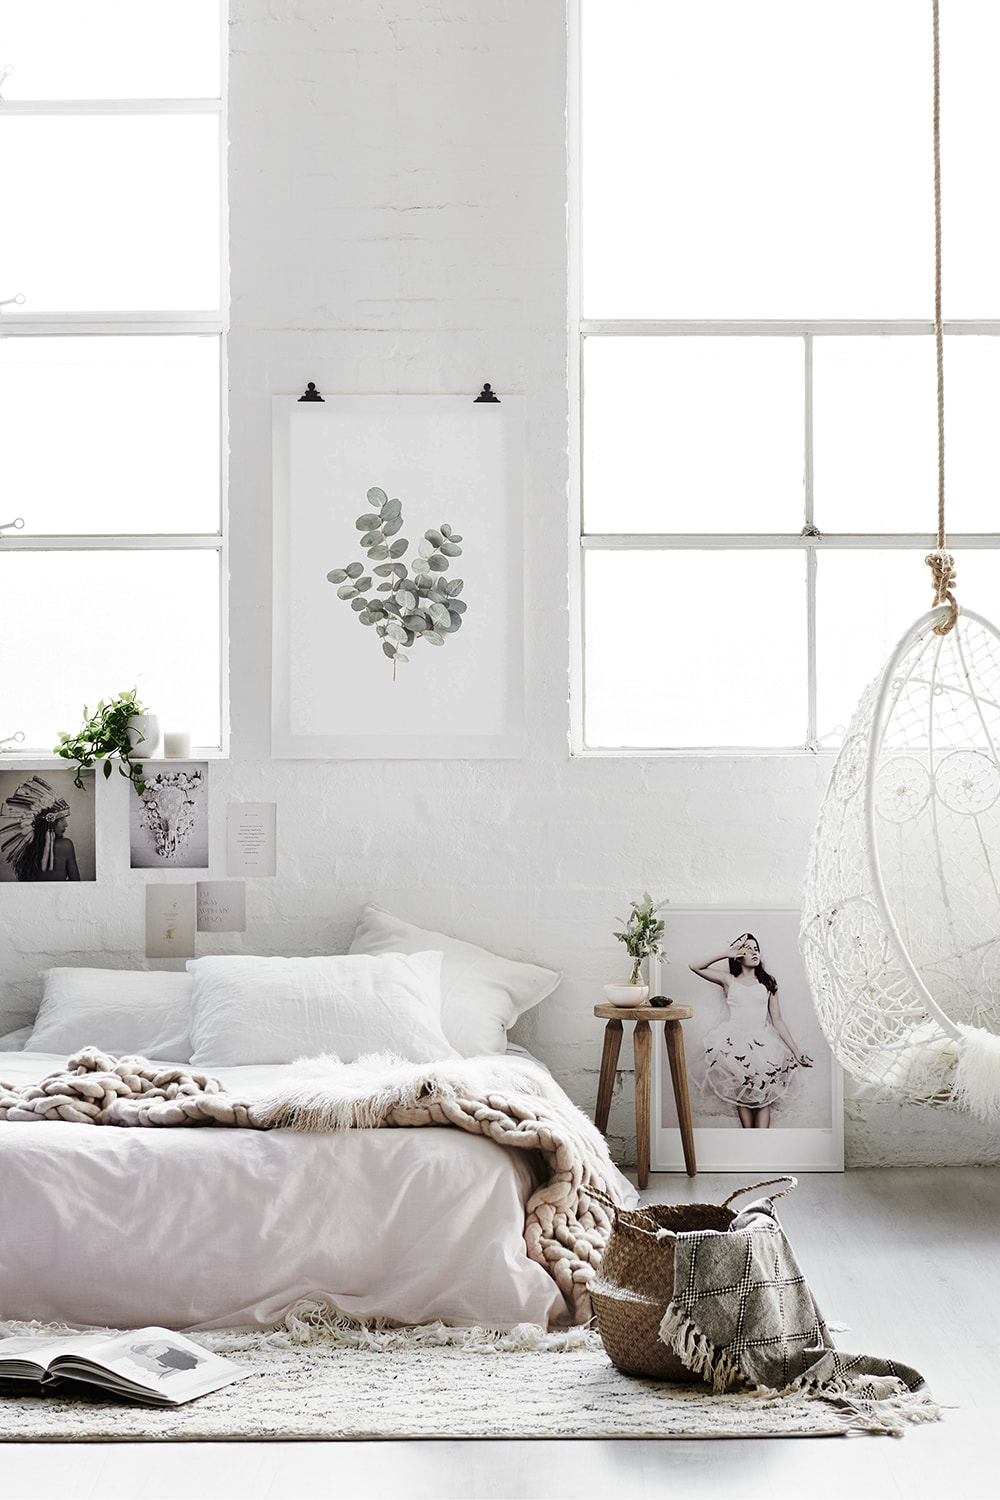 Scandi style bedroom view to show how you can make money while you sleep with passive income!